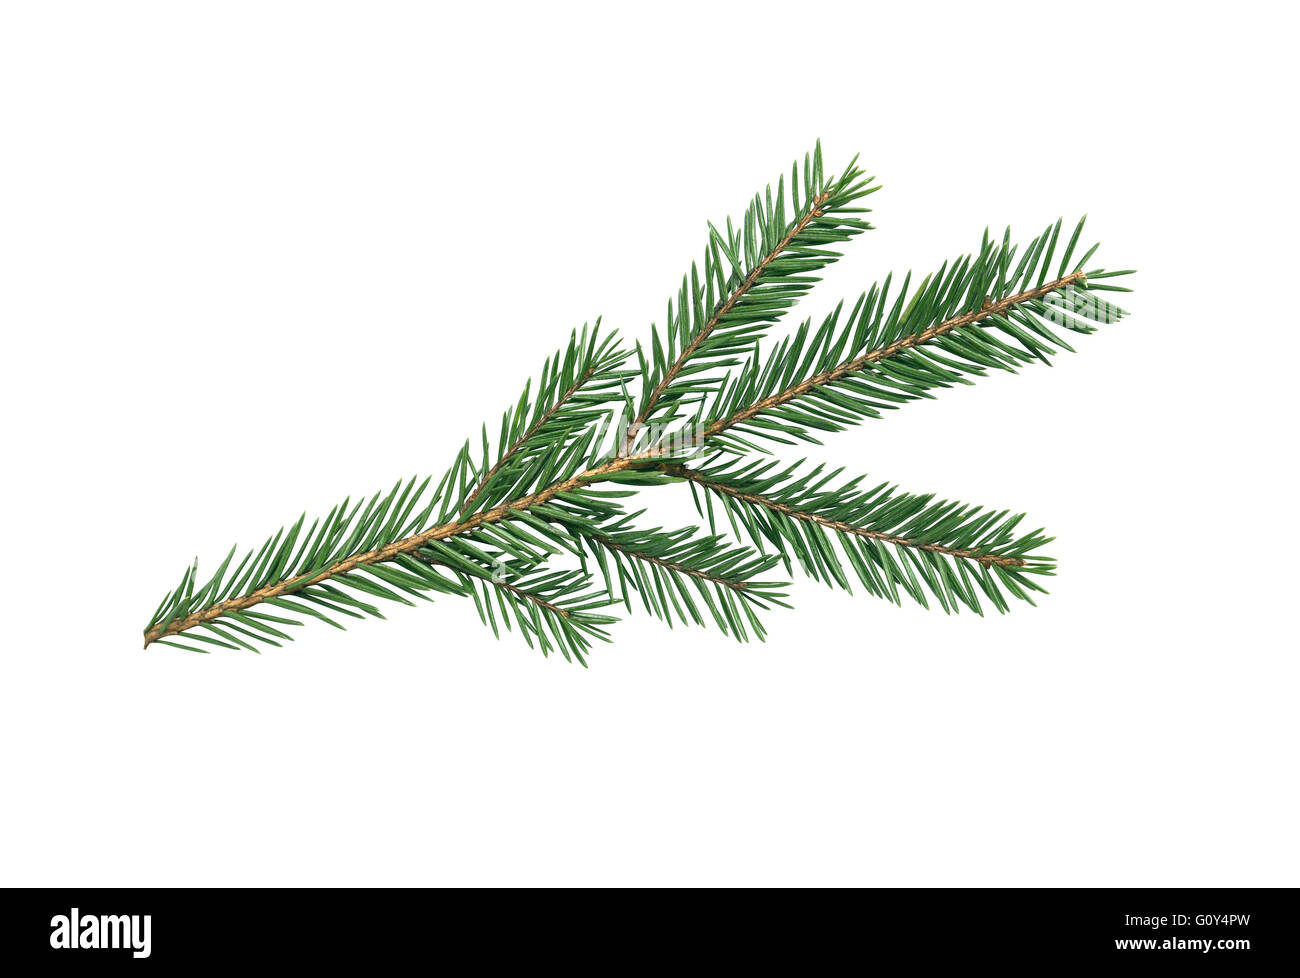 Spruce branch isolated on white background. Clipping path is included - Stock Image